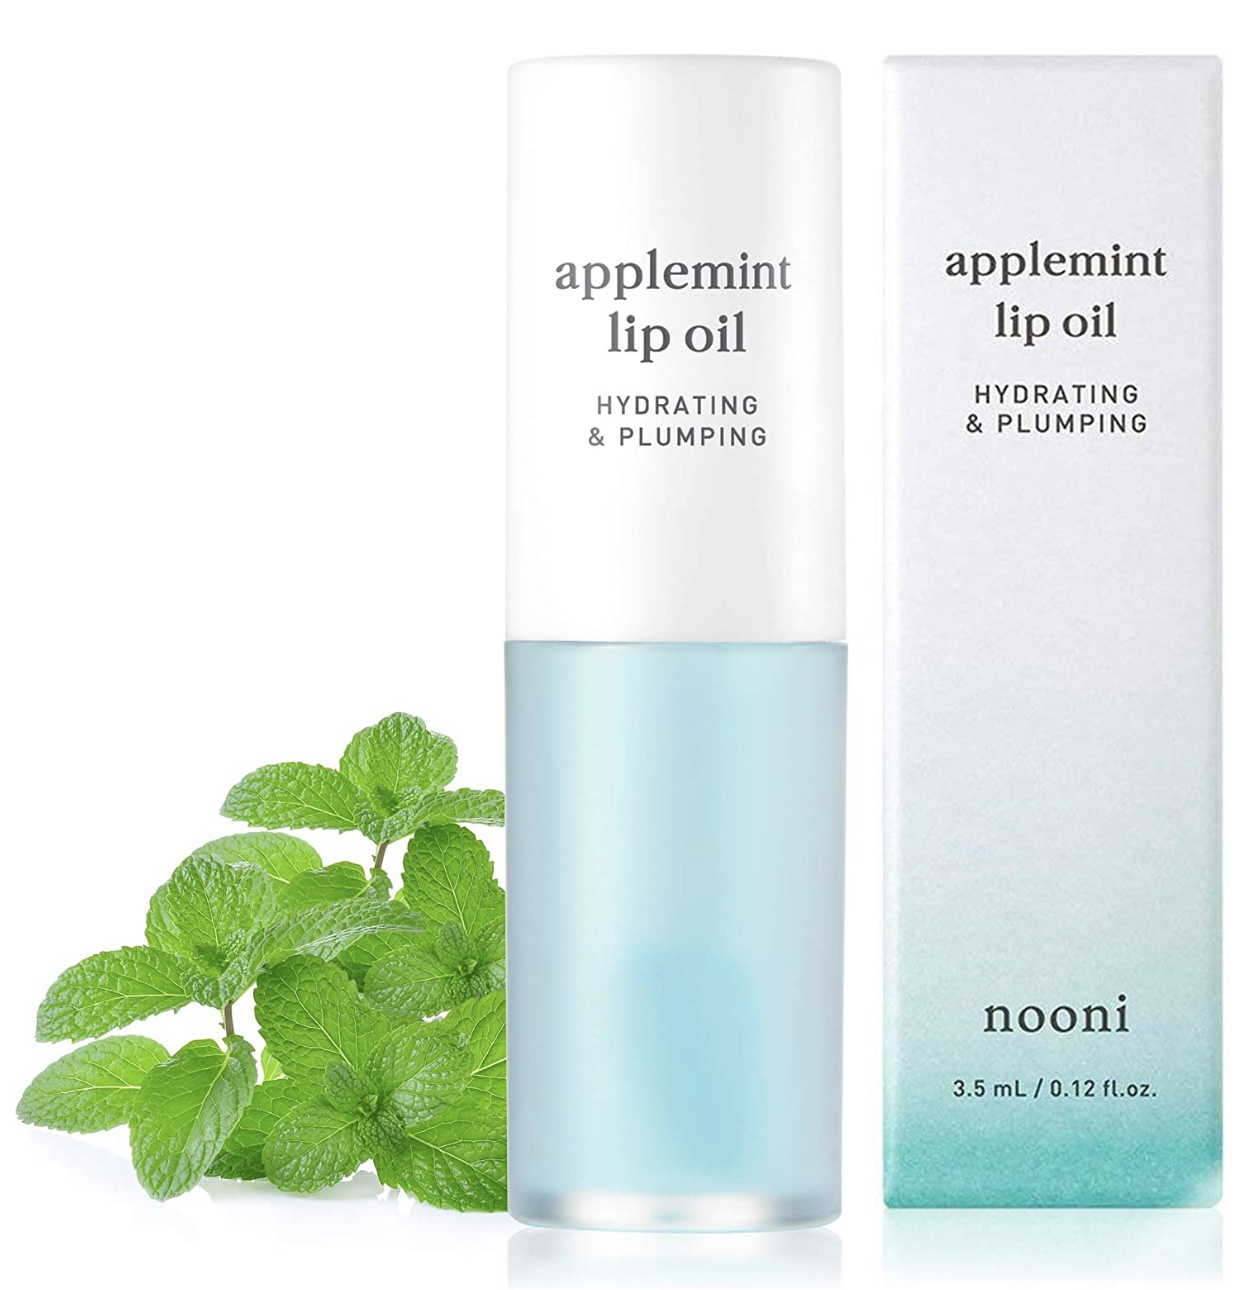 NOONI Applemint Hydrating Lip Oil